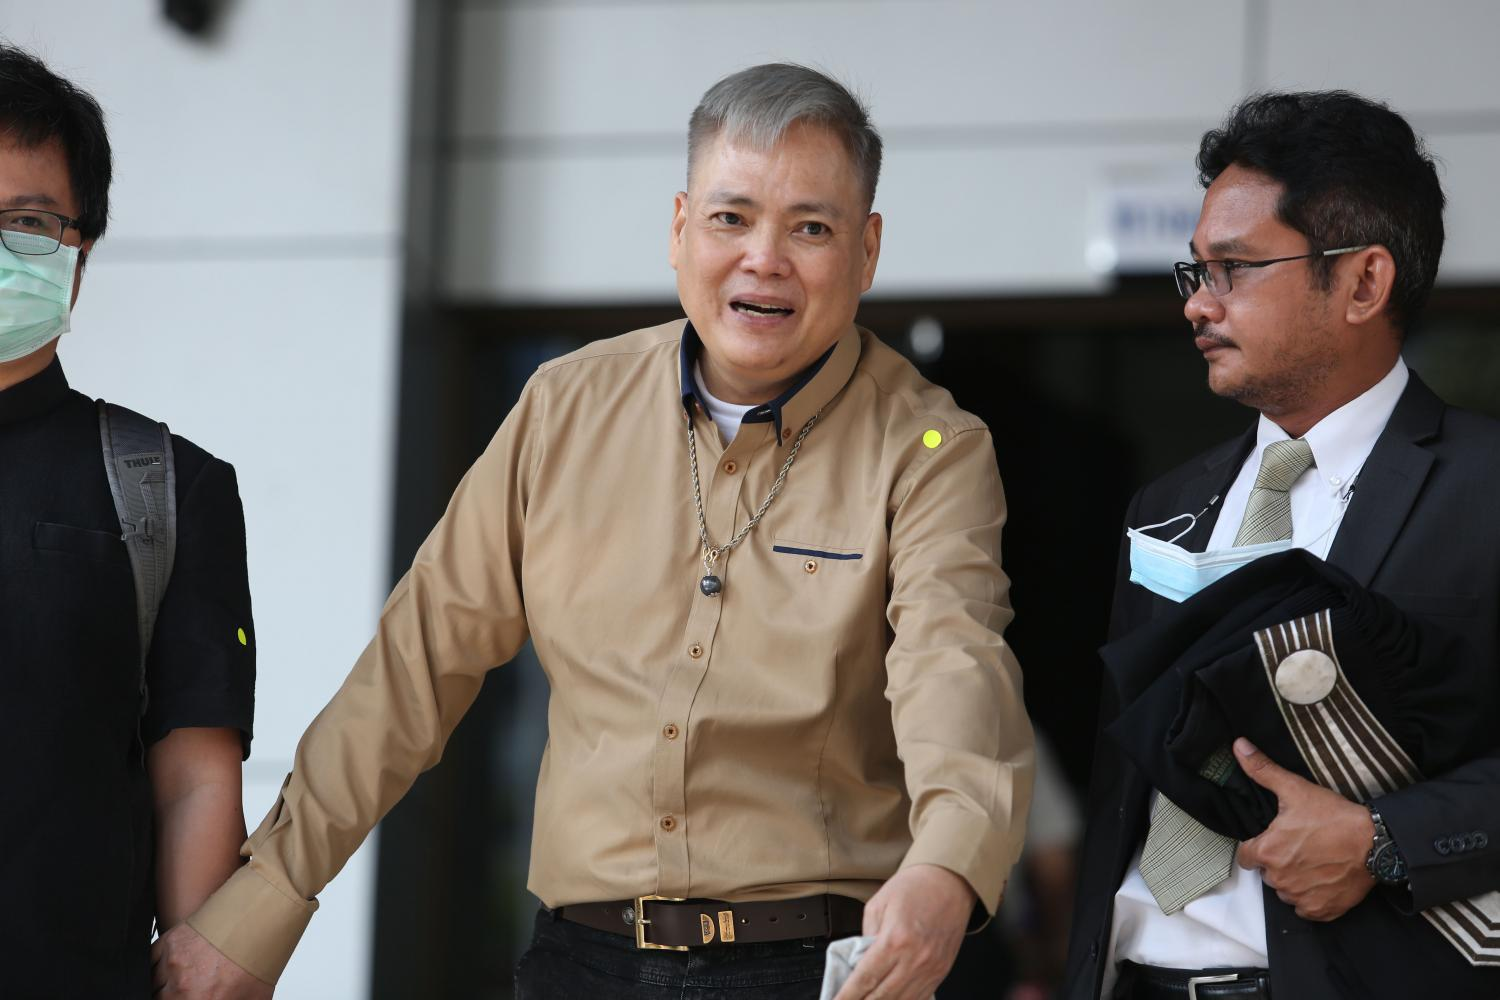 Lese majeste offender convicted, then released